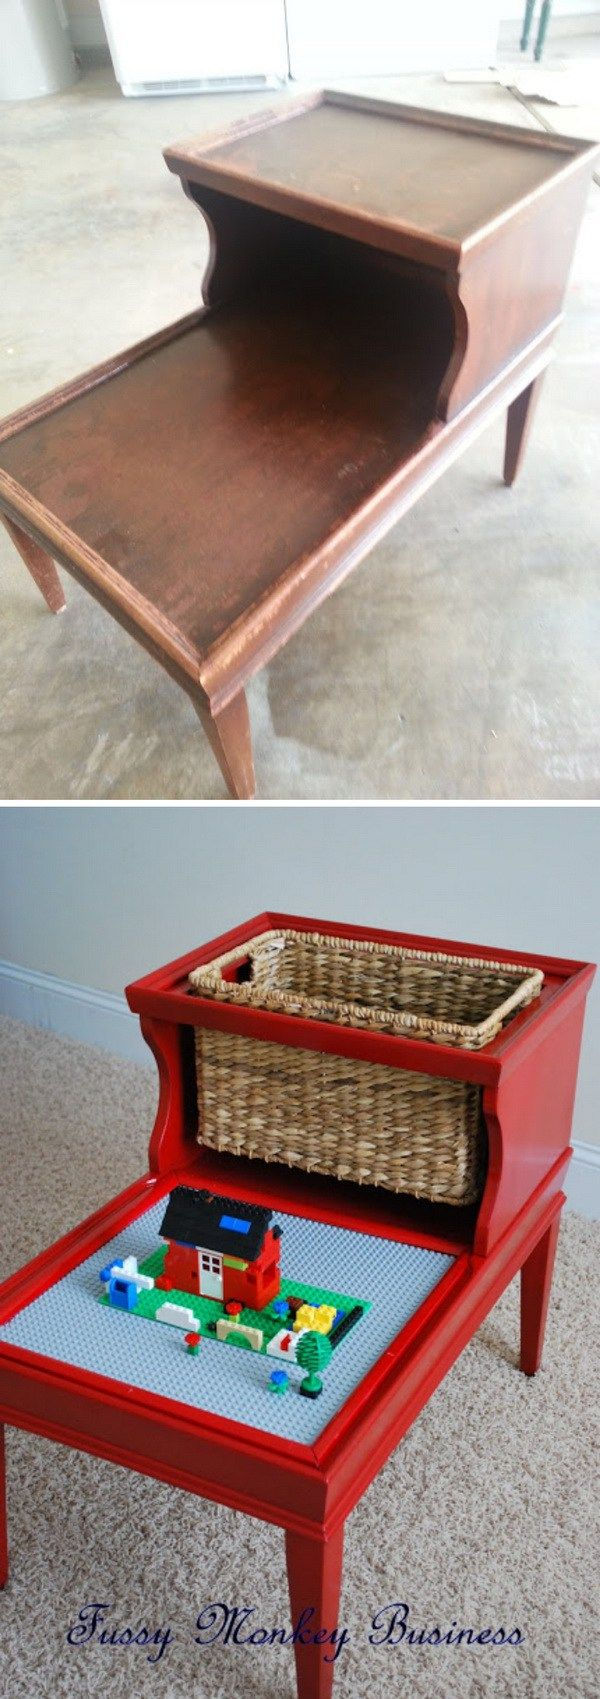 Amazing before and after!  DIY Lego Table Made out of an Old Table: Transfer an old table that you don't want to use anymore into this lego table. It is perfect in the playroom!